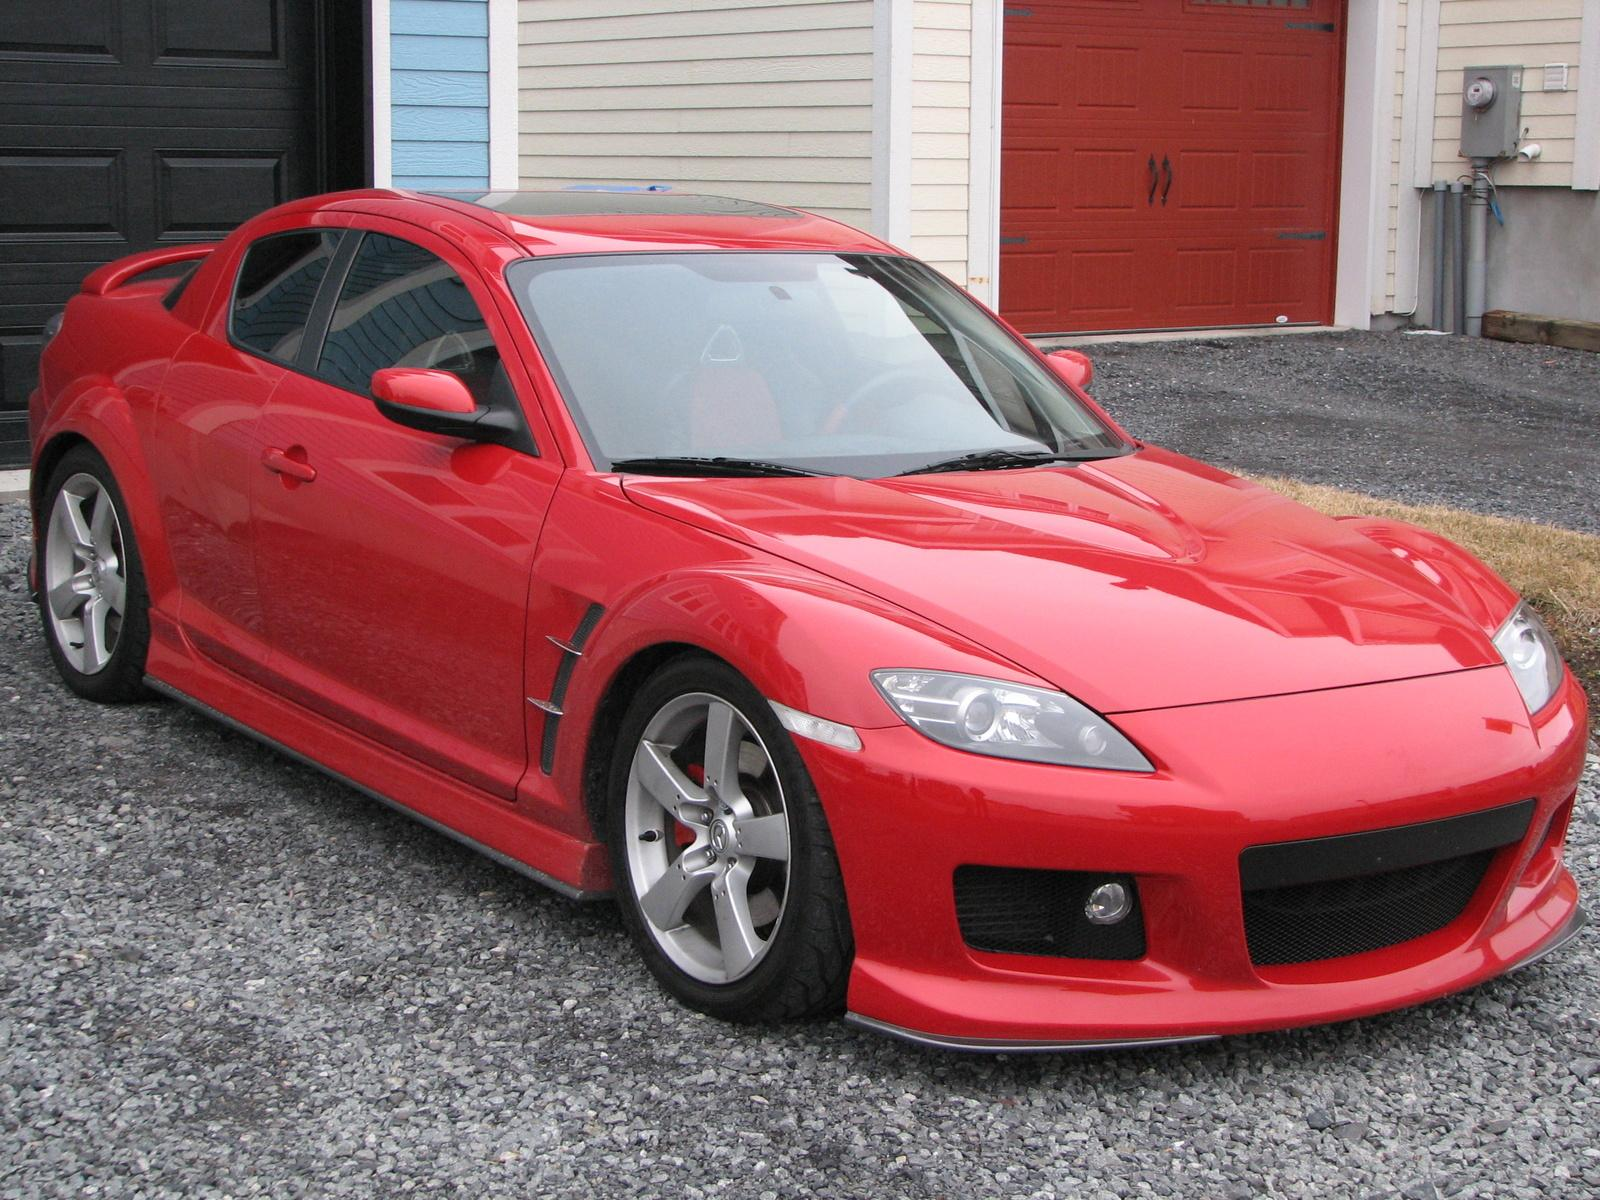 2005 mazda rx 8 information and photos zombiedrive. Black Bedroom Furniture Sets. Home Design Ideas